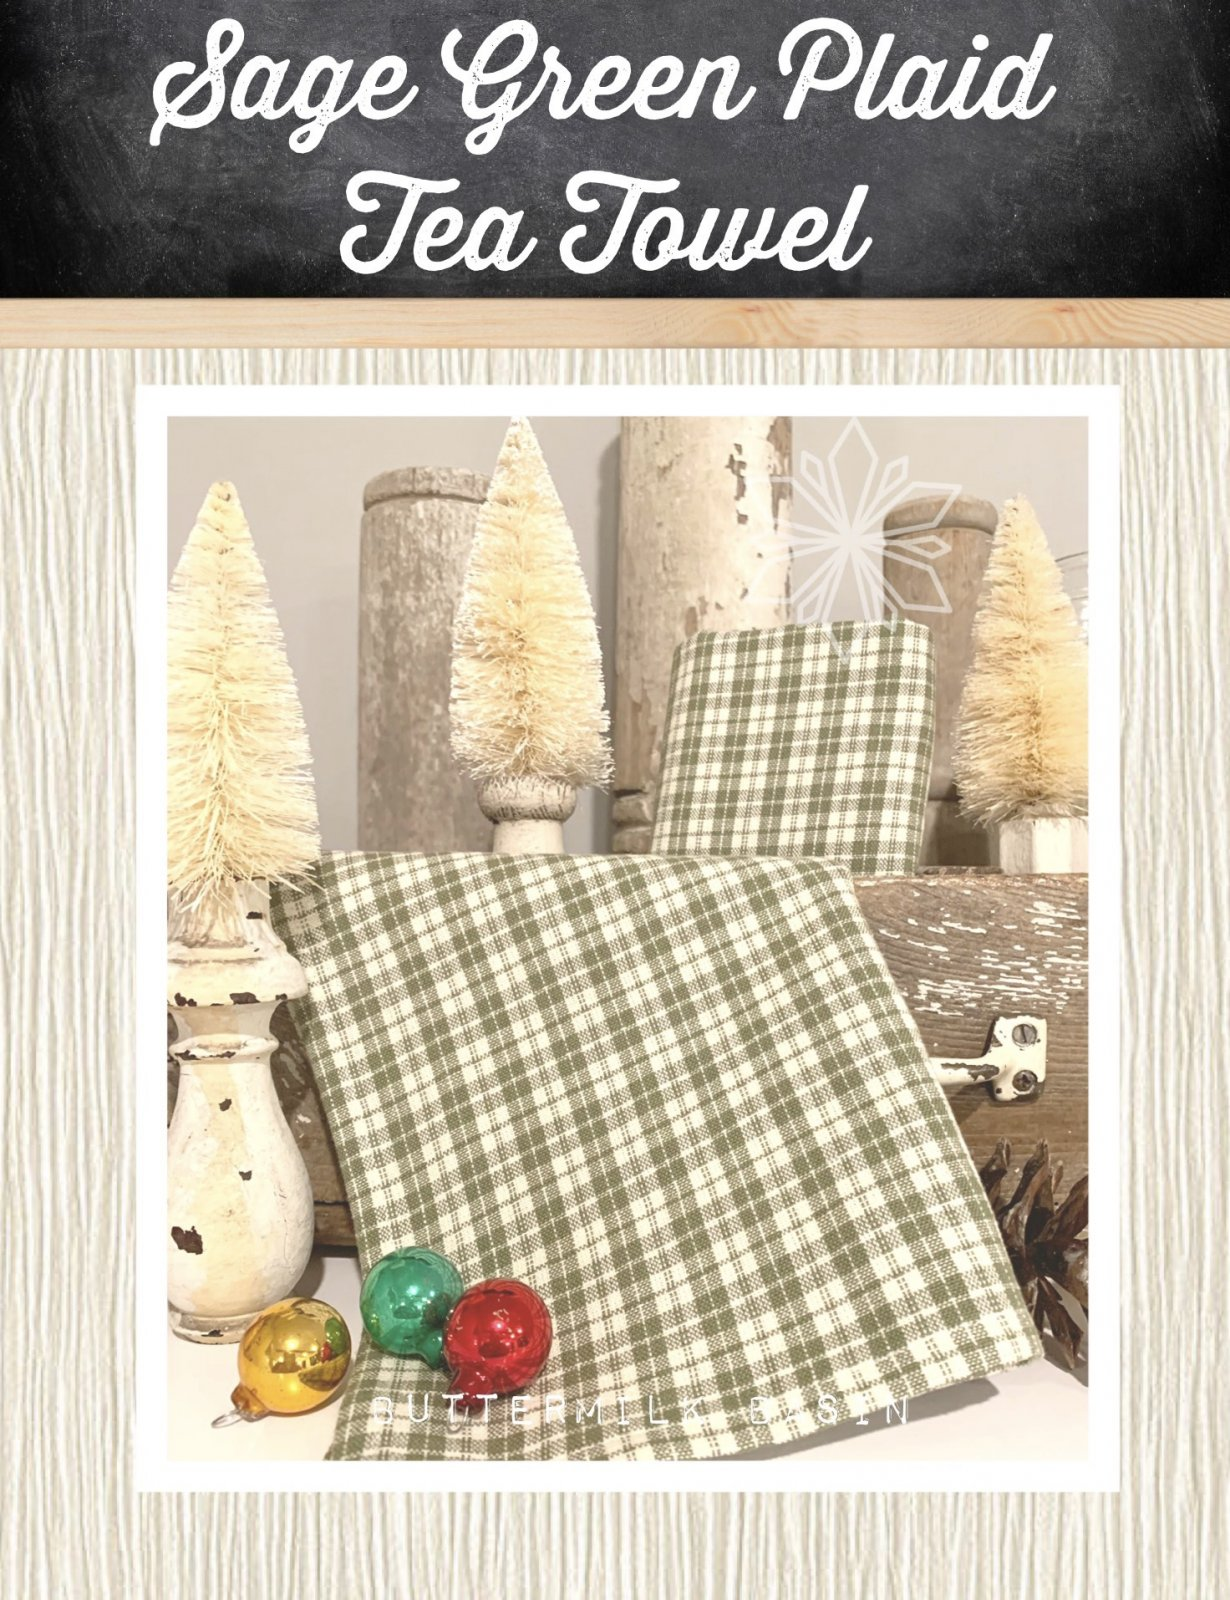 Sage Green Plaid Tea Towel